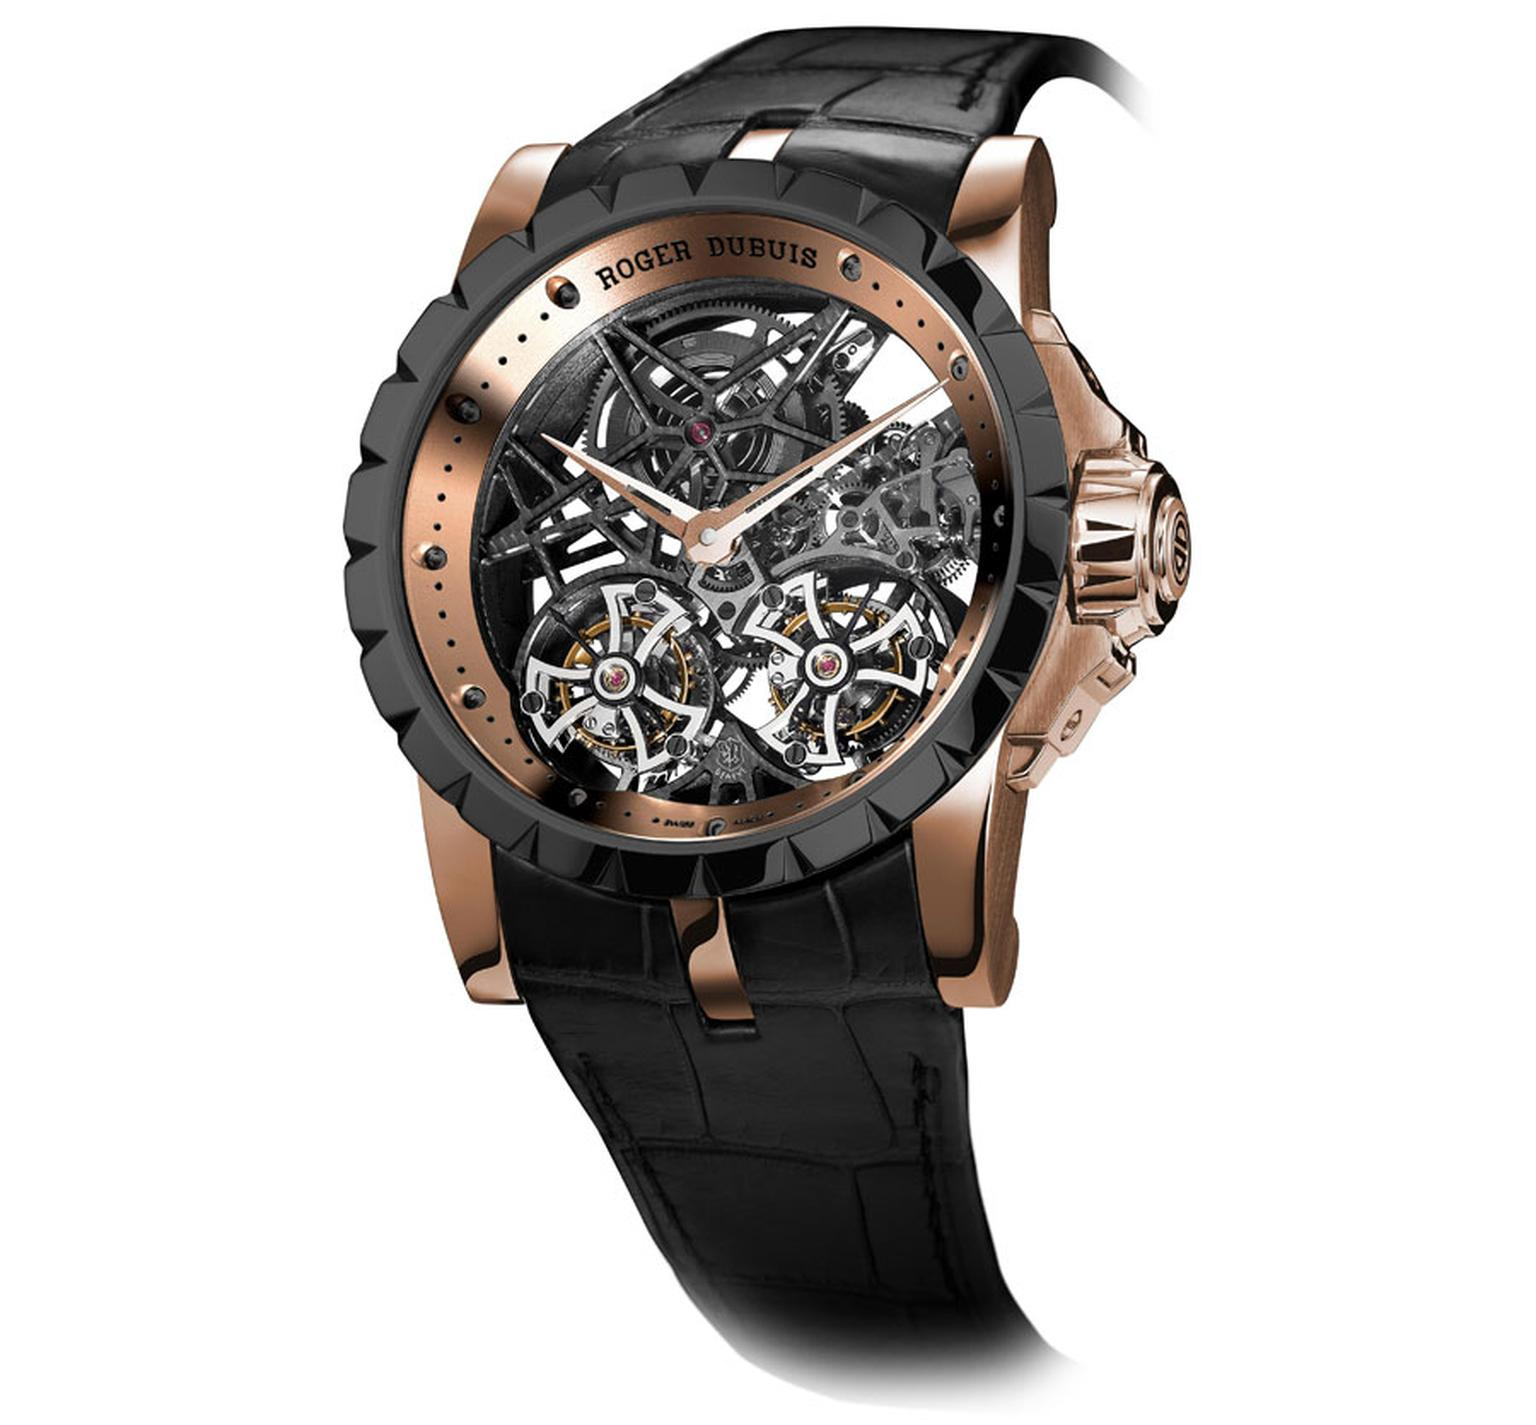 Roger-Dubuis-Excalibur-Double-Skeleton-Tourbillon---Limited-Edition.jpg